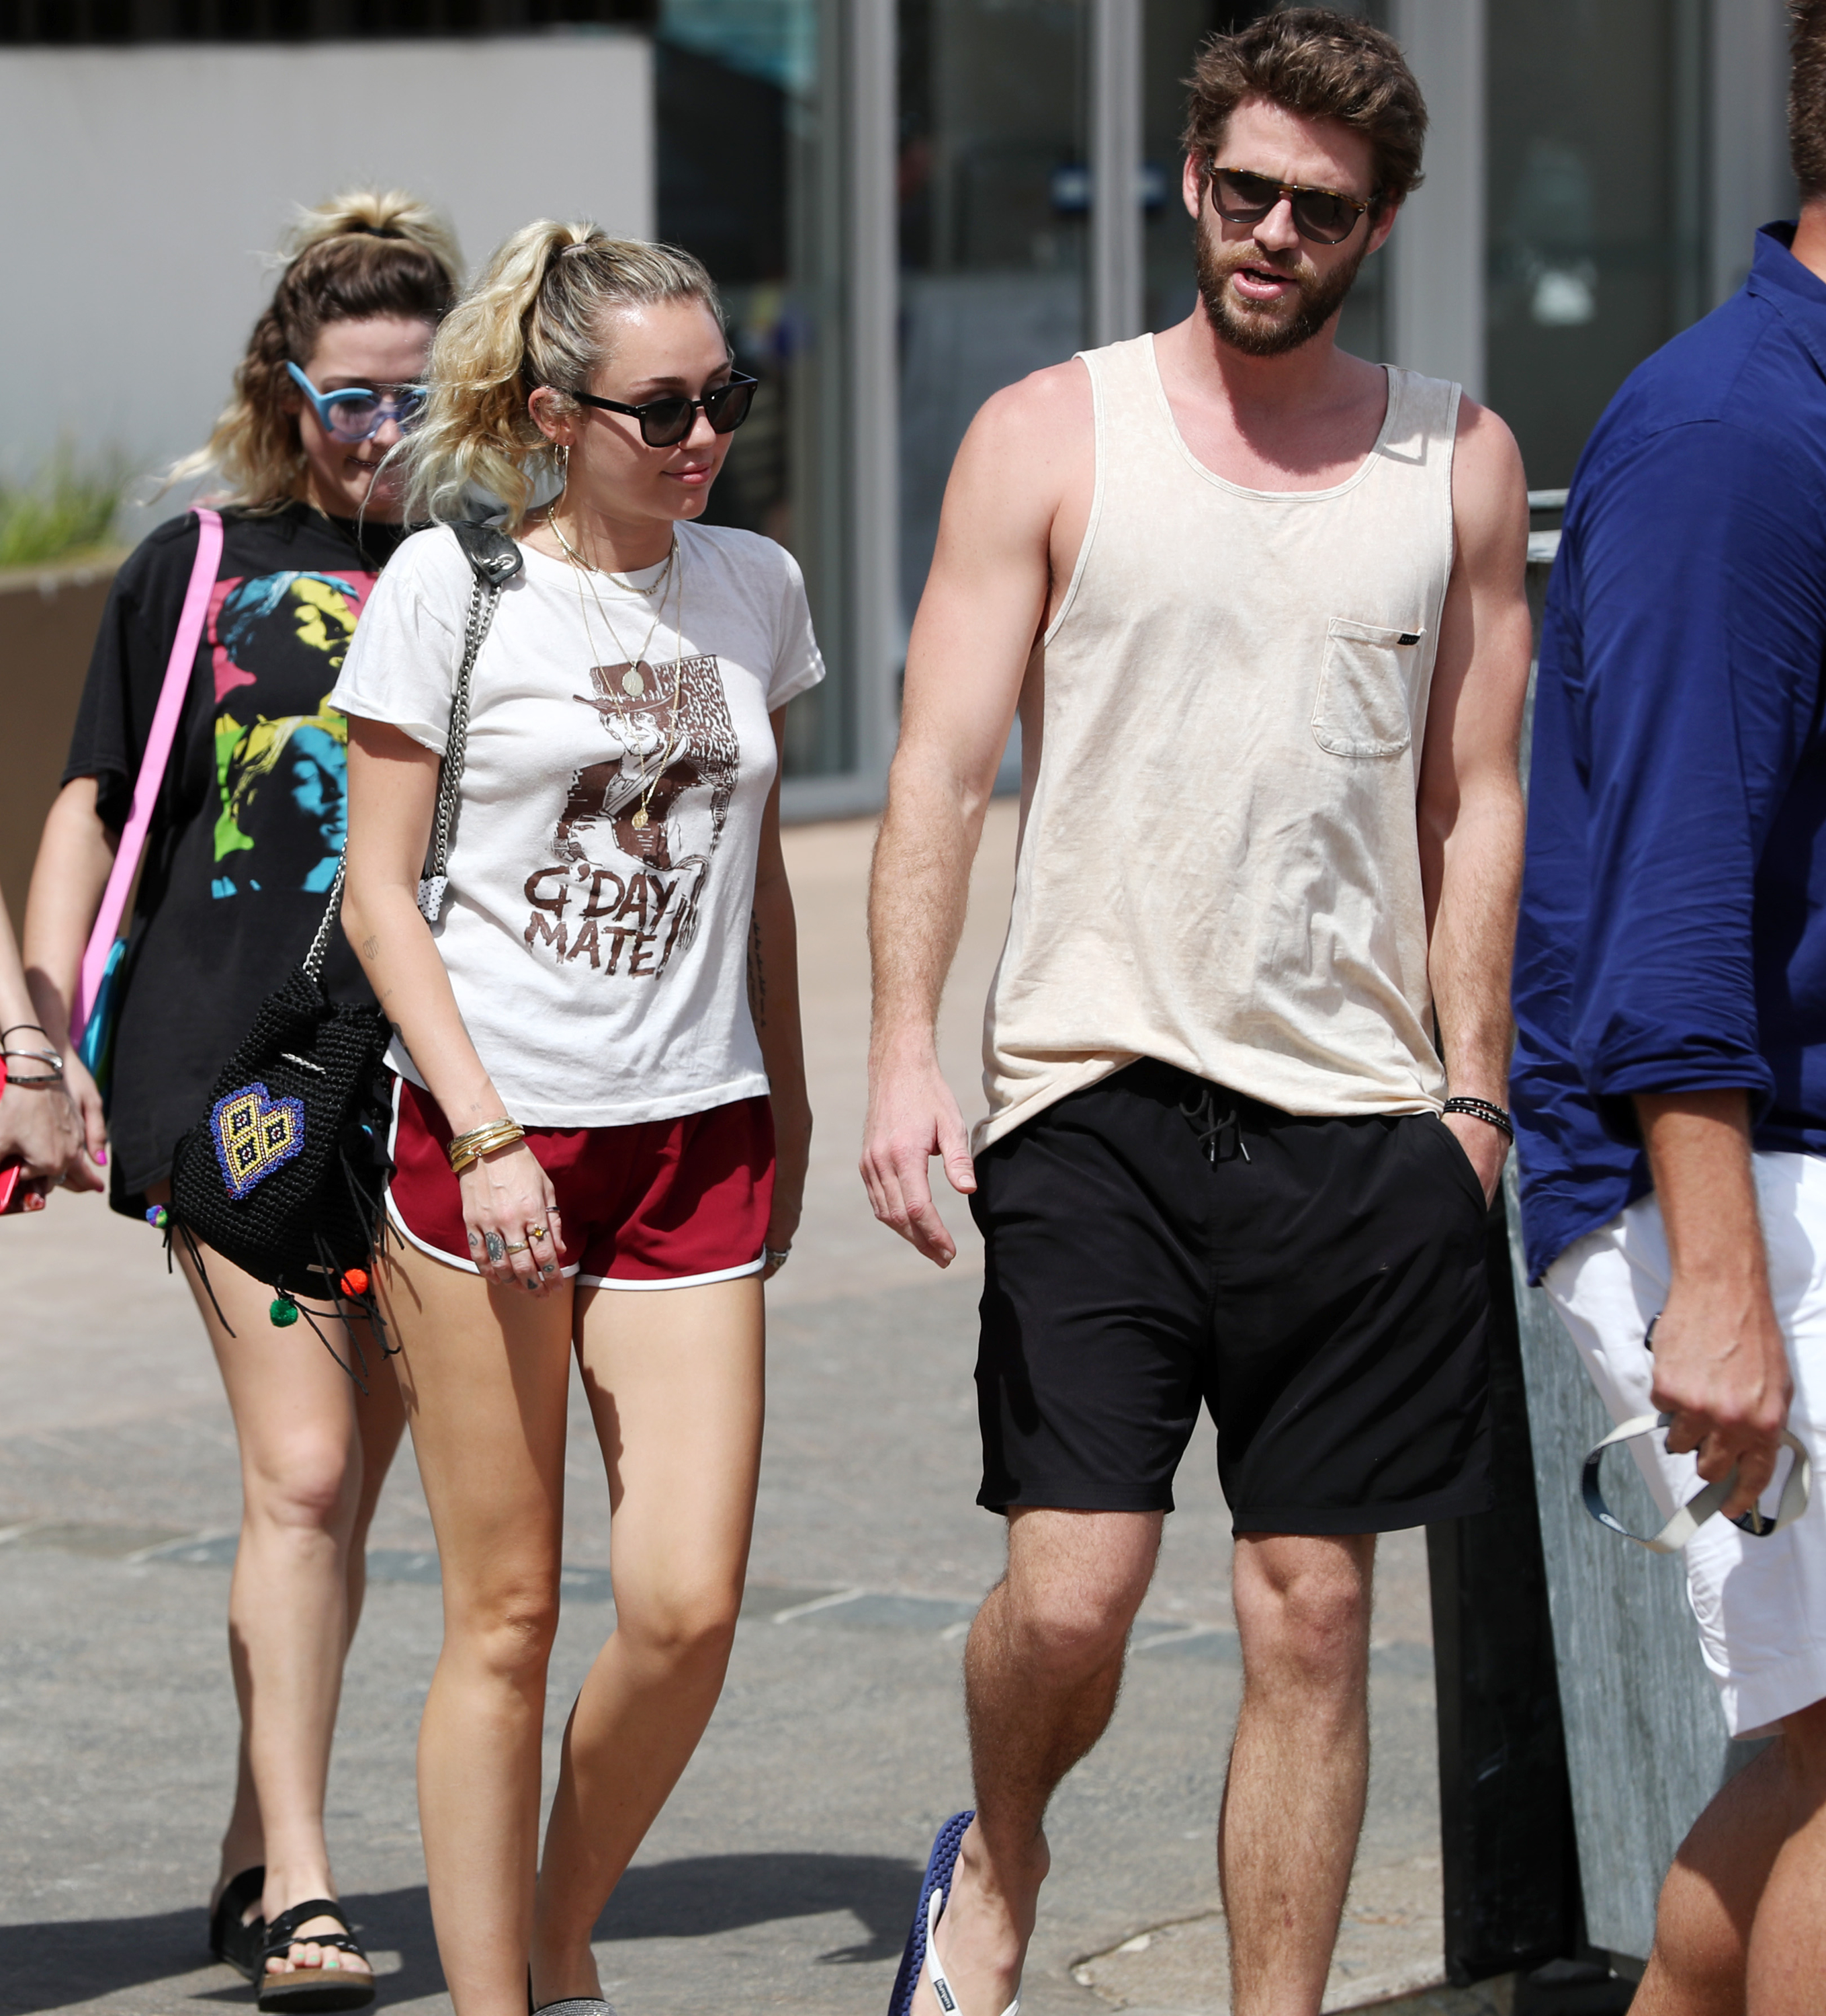 Miley Cyrus and Liam Hemsworth leave the Rick Shores restaurant in Burleigh Heads on the Gold Coast, Queensland, on Jan. 11, 2018.